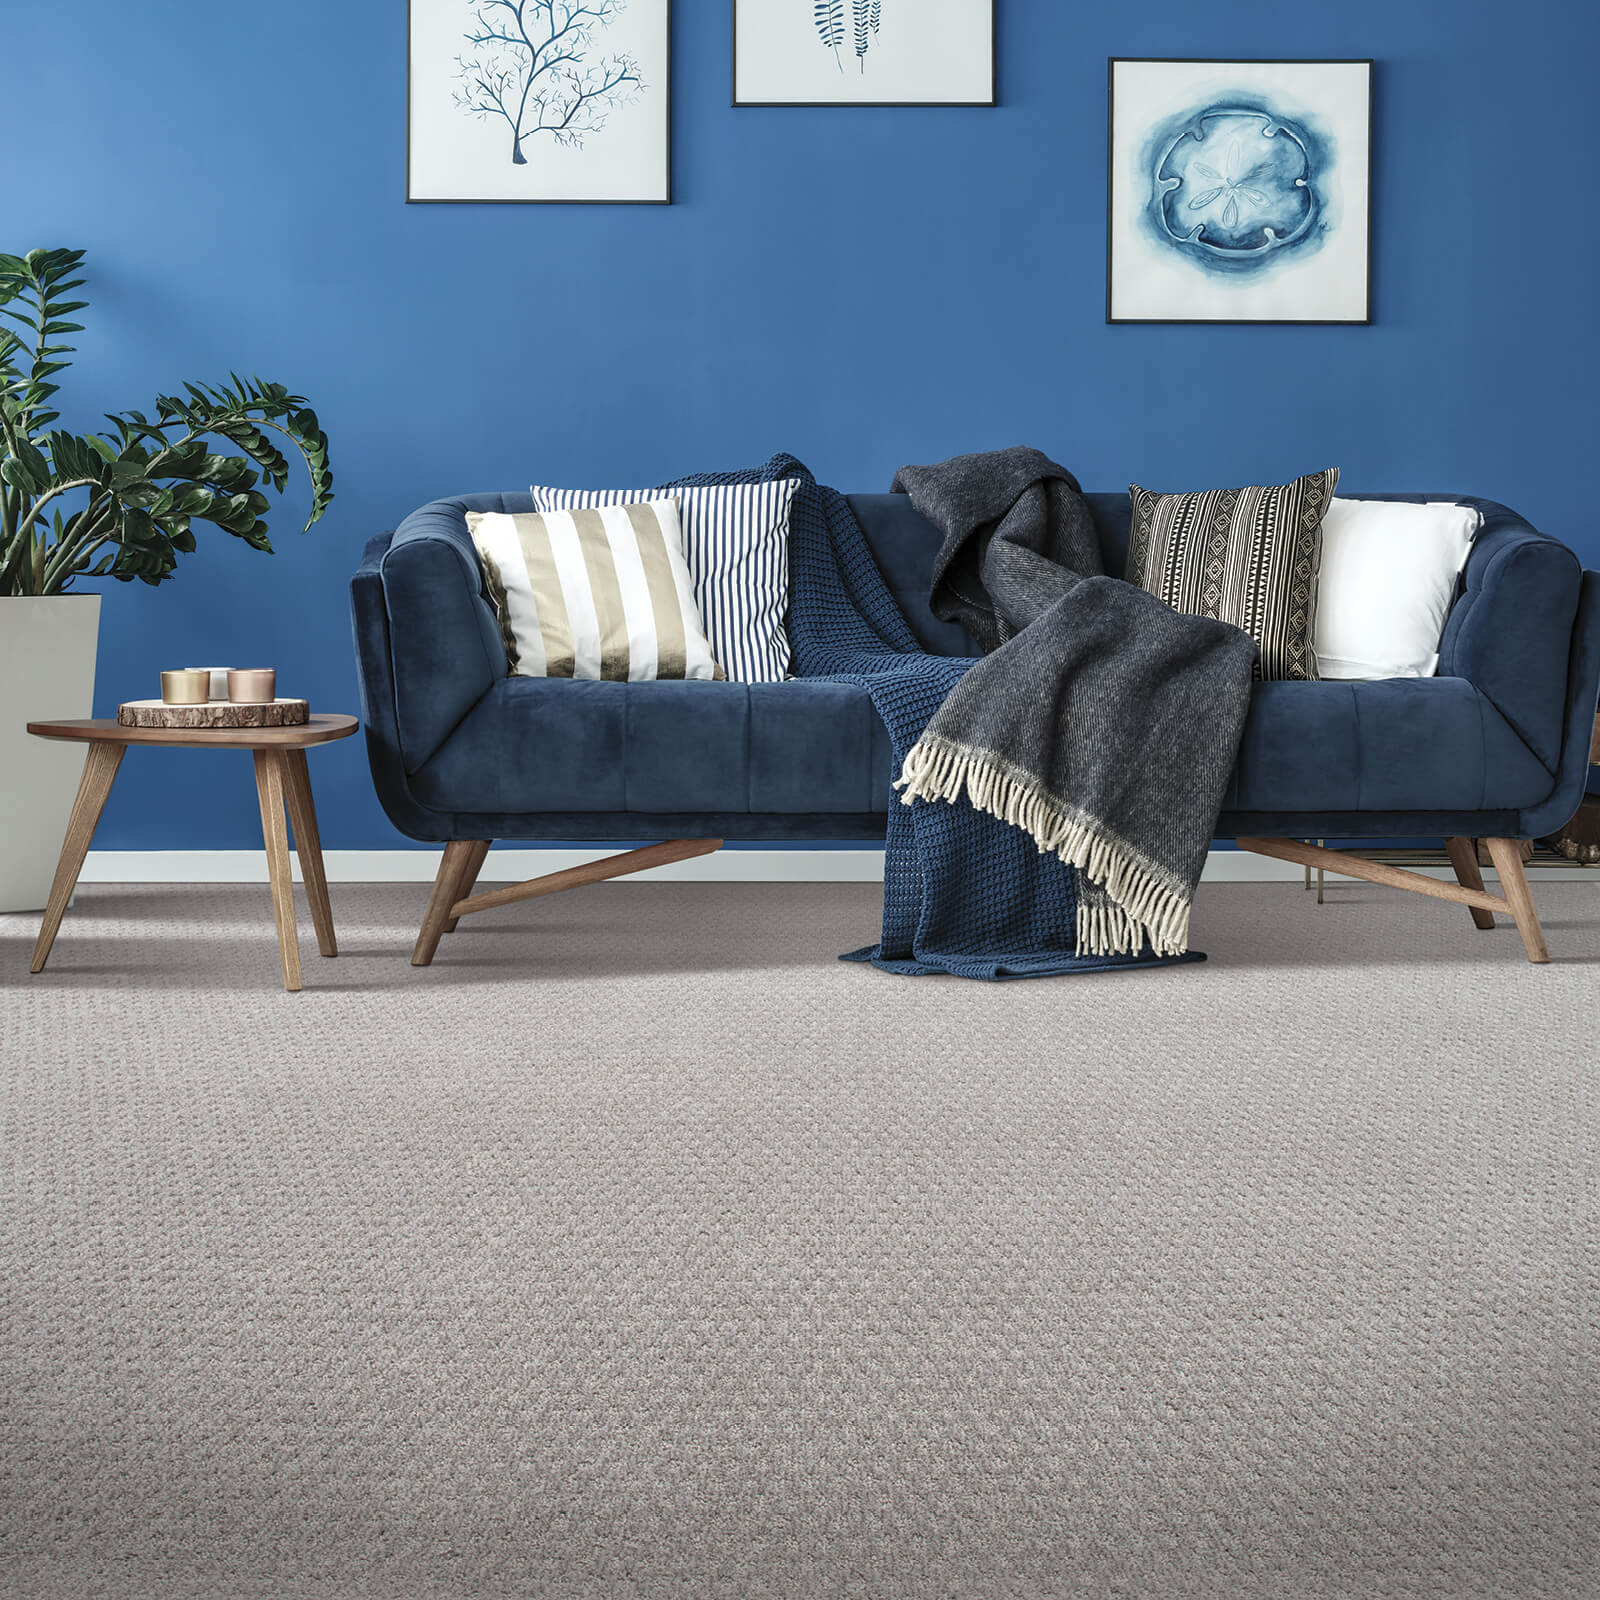 Blue couch on Carpet flooring | Georgia Flooring